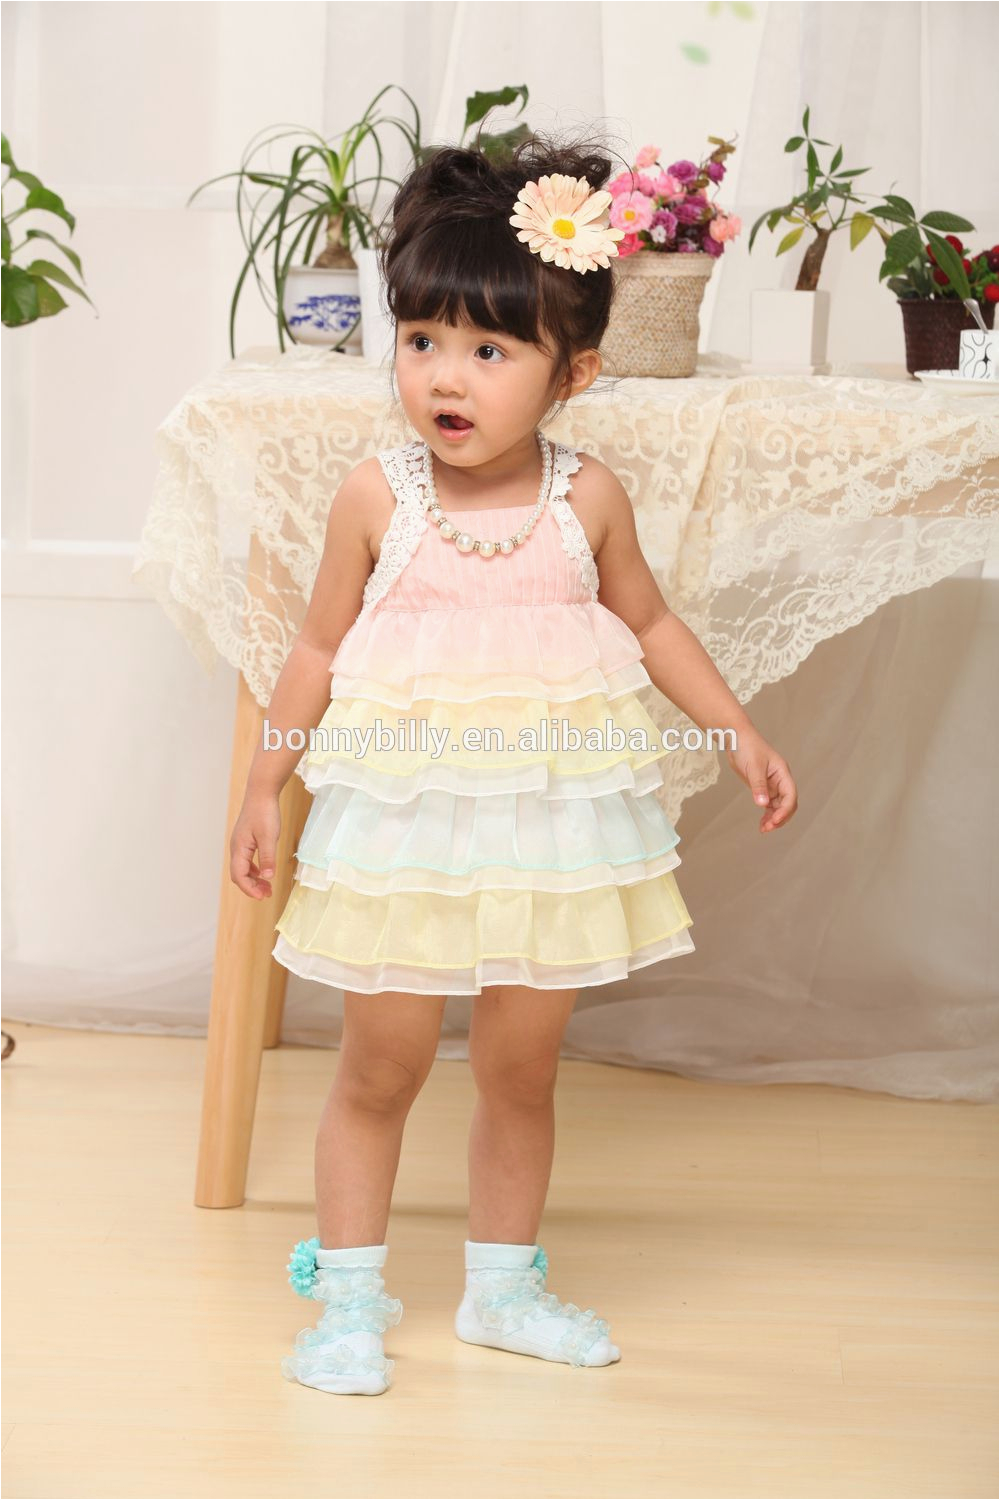 baby dress 1 year old 2017 fashion trends